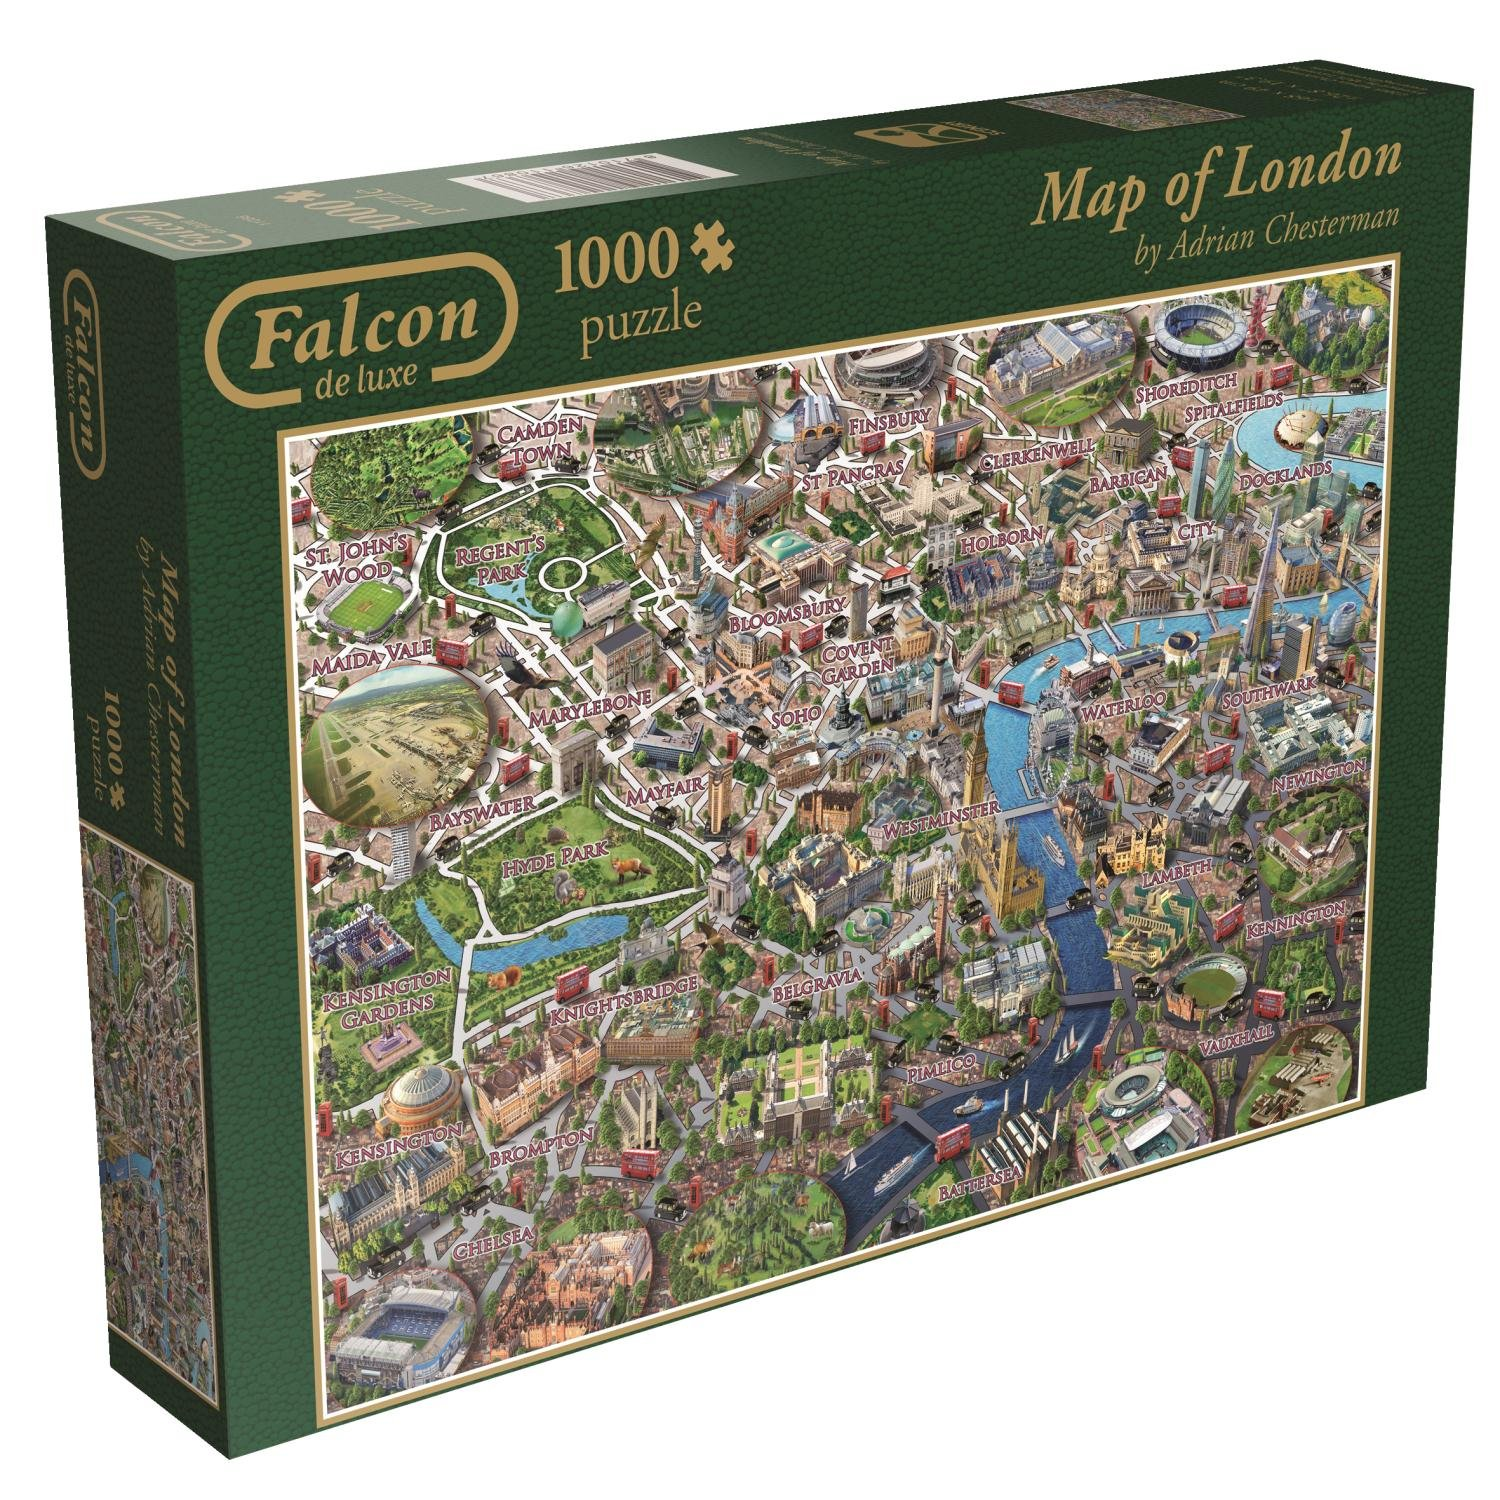 Winsome Jumbo Games Falcon De Luxe Map Of London Jigsaw Puzzle Piece  With Outstanding Jumbo Games Falcon De Luxe Map Of London Jigsaw Puzzle Piece  Amazoncouk Toys  Games With Delectable Cuprinol Garden Shades Terracotta Also Garden Hoses Uk In Addition Towcester Garden Centre And White Pebbles For Garden As Well As Mayfield Garden Centre Kelso Additionally Kew Gardens Entrance Fee From Amazoncouk With   Outstanding Jumbo Games Falcon De Luxe Map Of London Jigsaw Puzzle Piece  With Delectable Jumbo Games Falcon De Luxe Map Of London Jigsaw Puzzle Piece  Amazoncouk Toys  Games And Winsome Cuprinol Garden Shades Terracotta Also Garden Hoses Uk In Addition Towcester Garden Centre From Amazoncouk